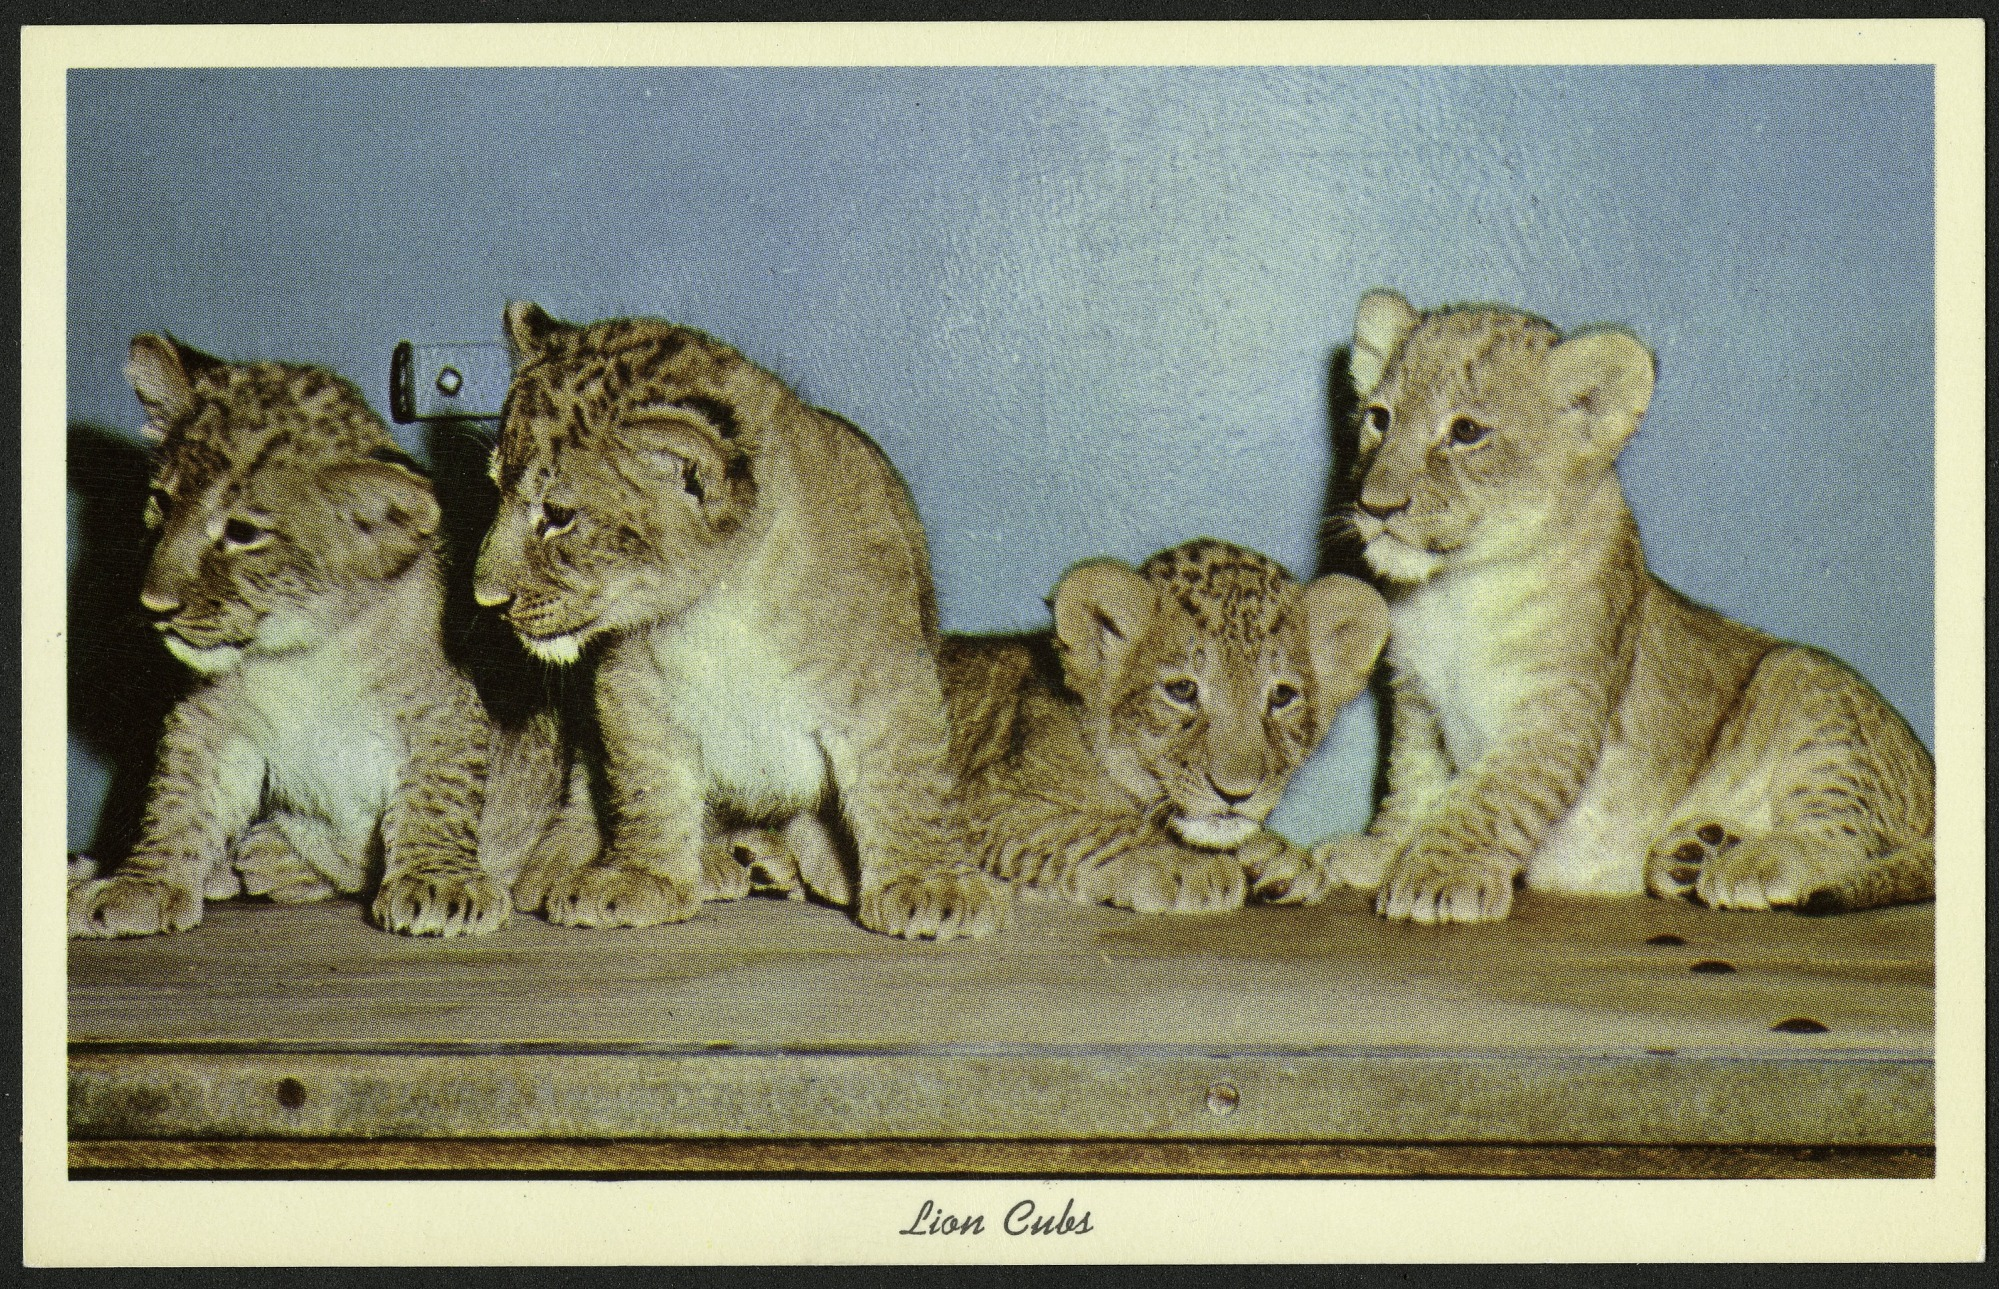 Blank Postcard of Lion Cubs